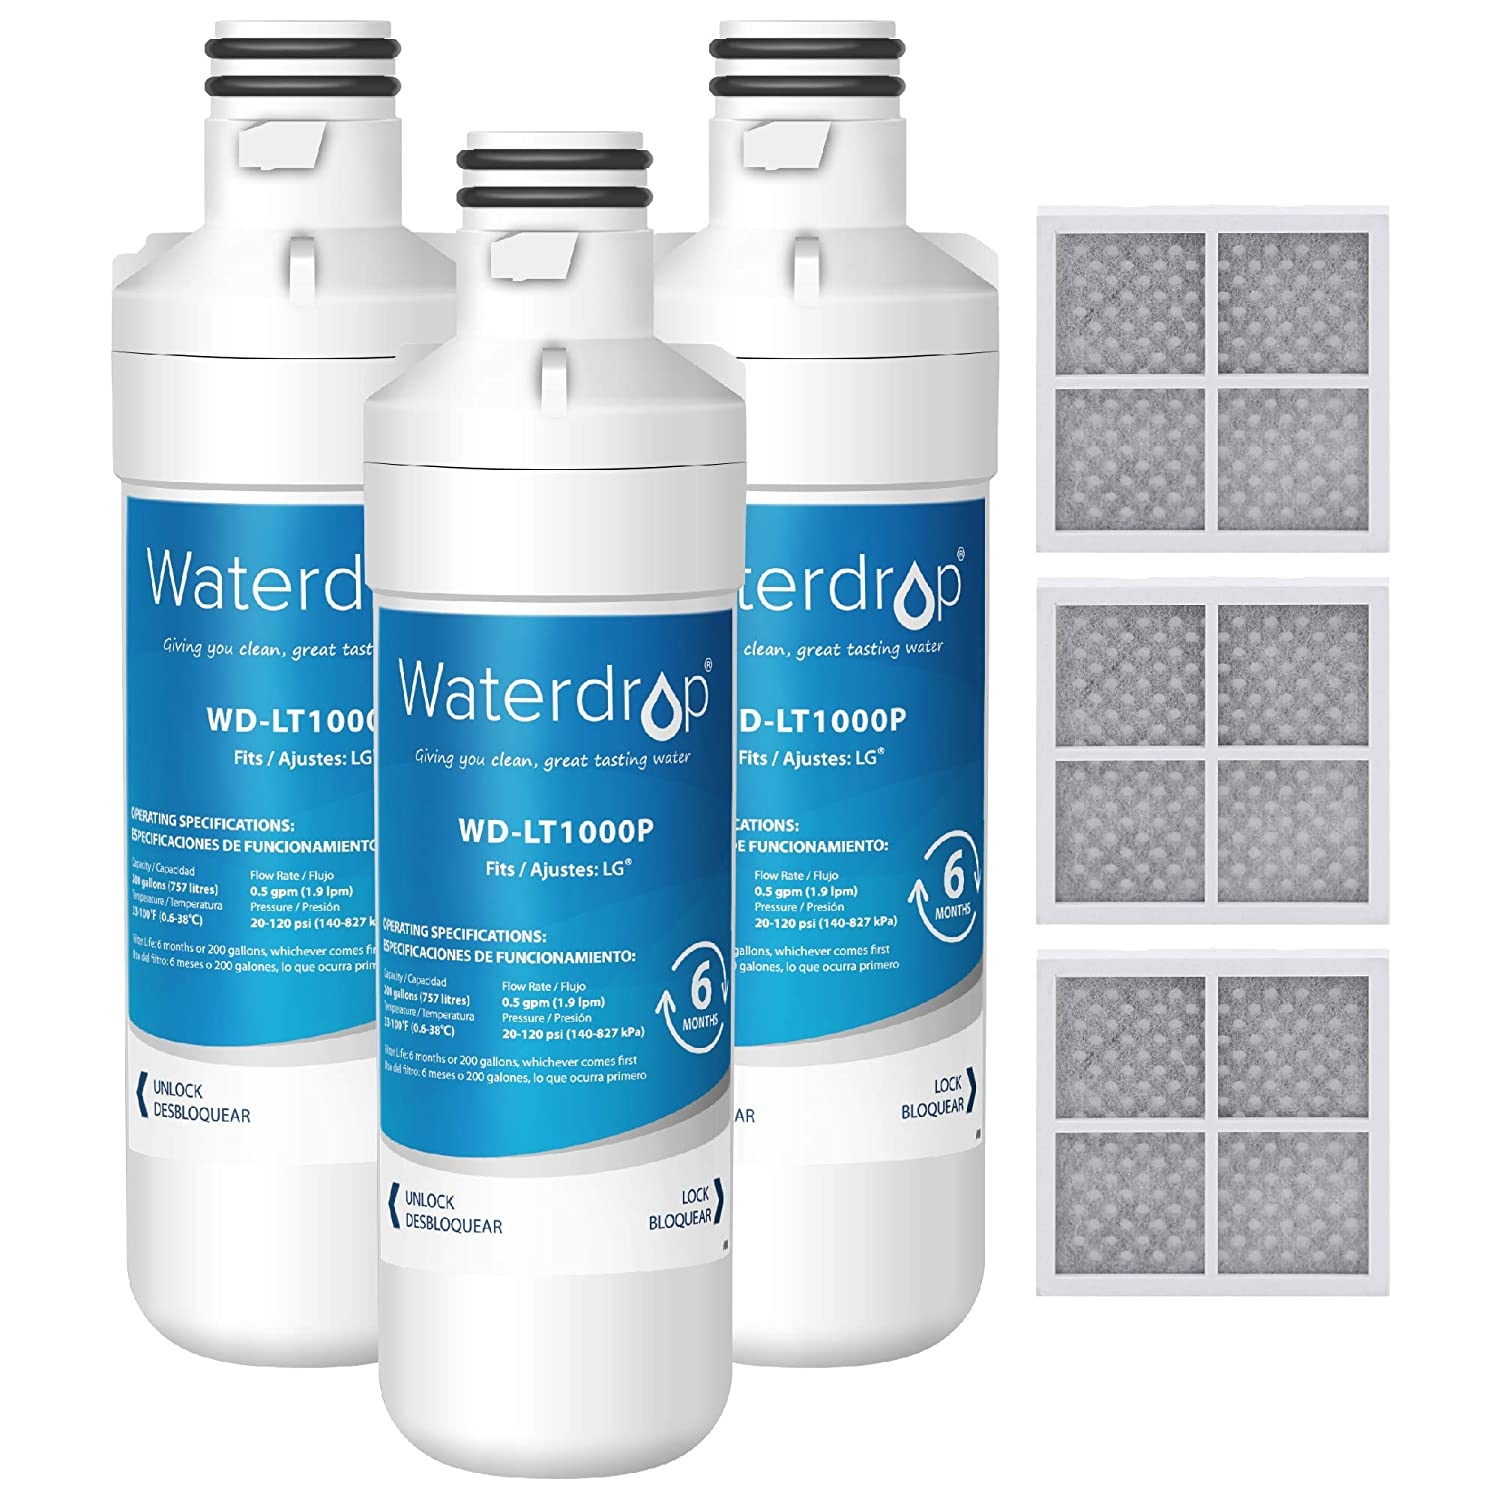 Waterdrop MDJ64844601 Refrigerator Water Filter and Air Filter, Compatible with LG LT1000P, LT1000PC, MDJ64844601, Kenmore 46-9980, 9980, ADQ74793501, ADQ74793502 and LT120F Combo, Pack of 3